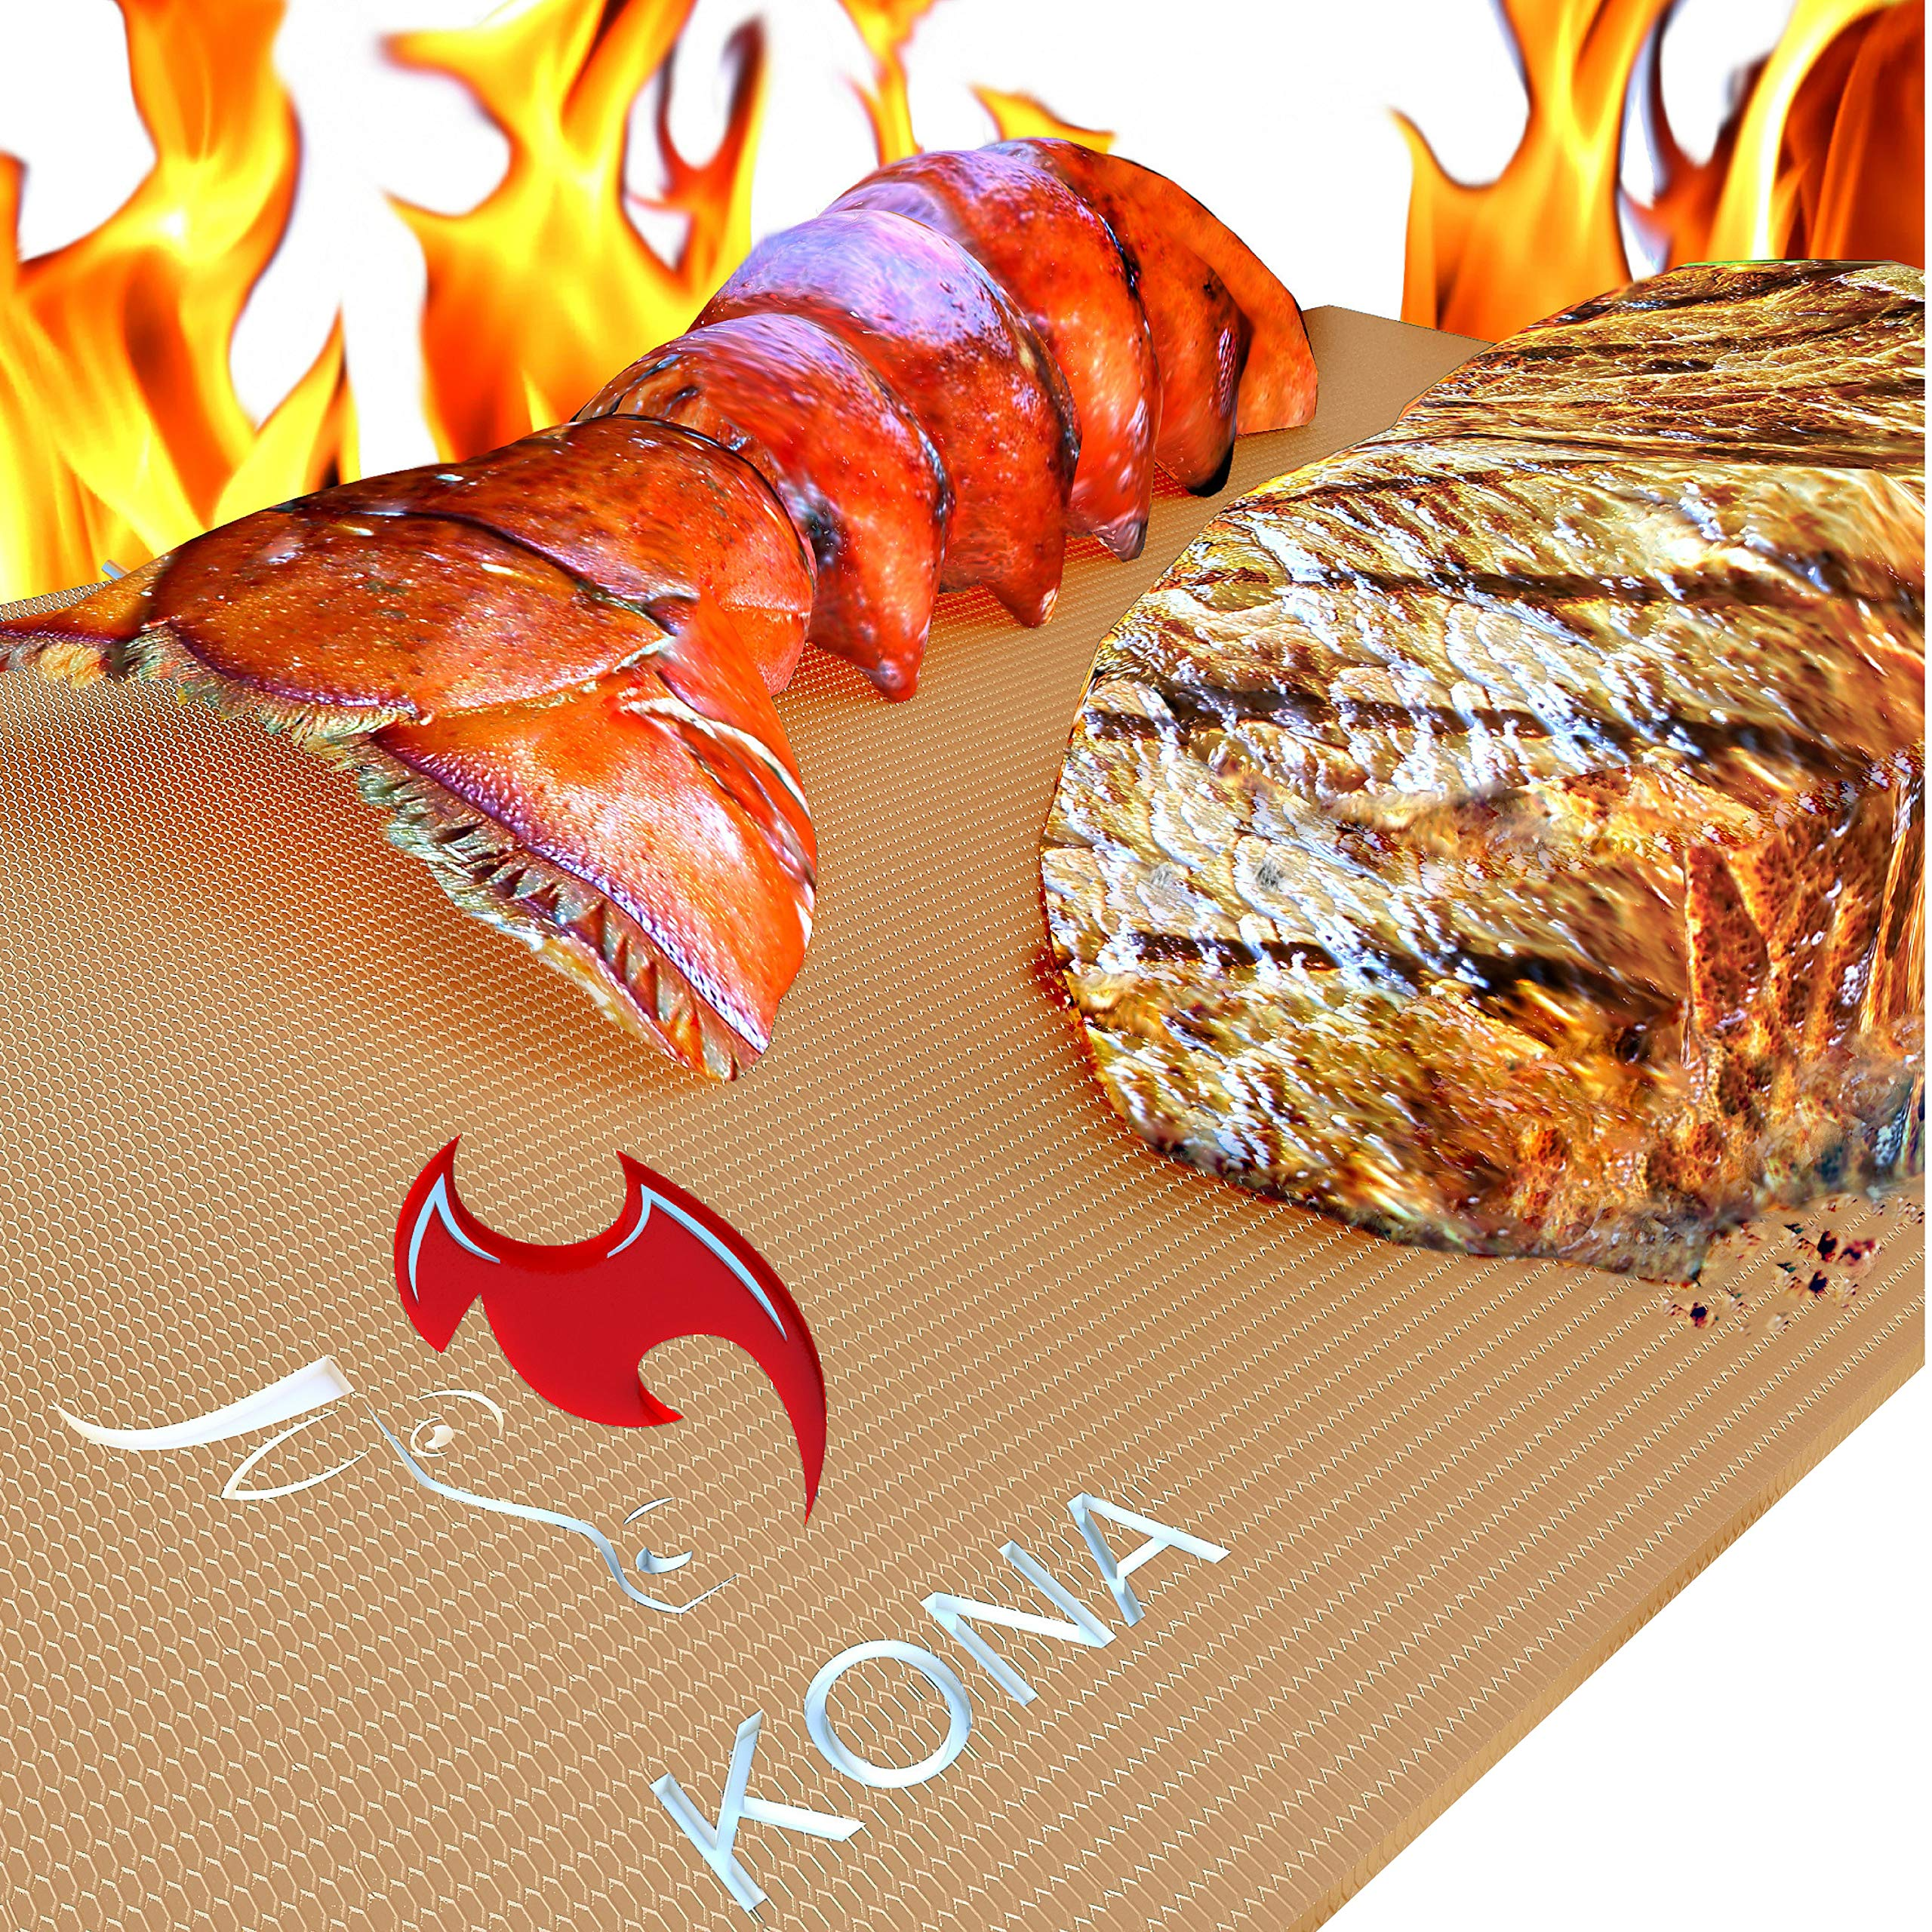 Kona Best Copper Grill Mats - Non Stick BBQ Grilling Mats for Gas Grills, Electric, Charcoal, Smokers (Set of 2) by Kona